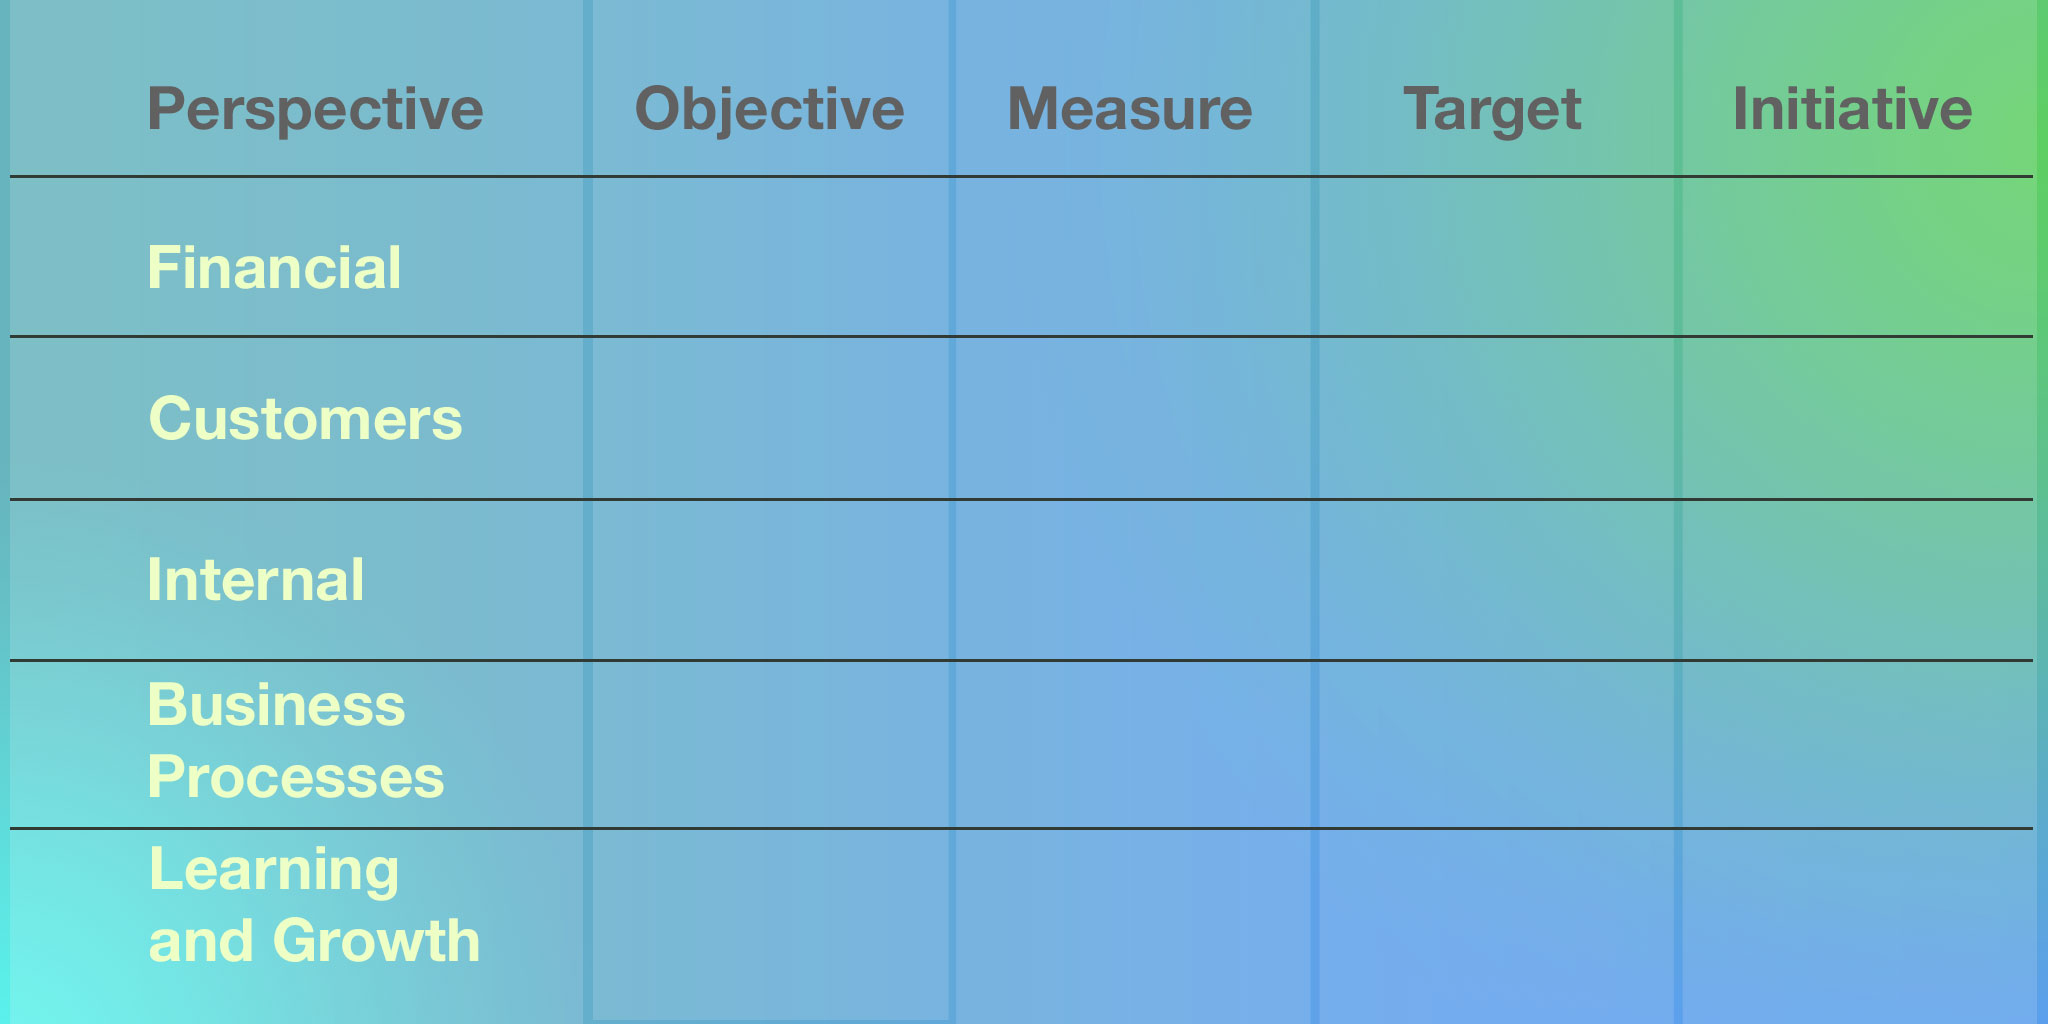 Objectives, measures, targets and initiatives of the 4 perspectives of the balanced scorecard